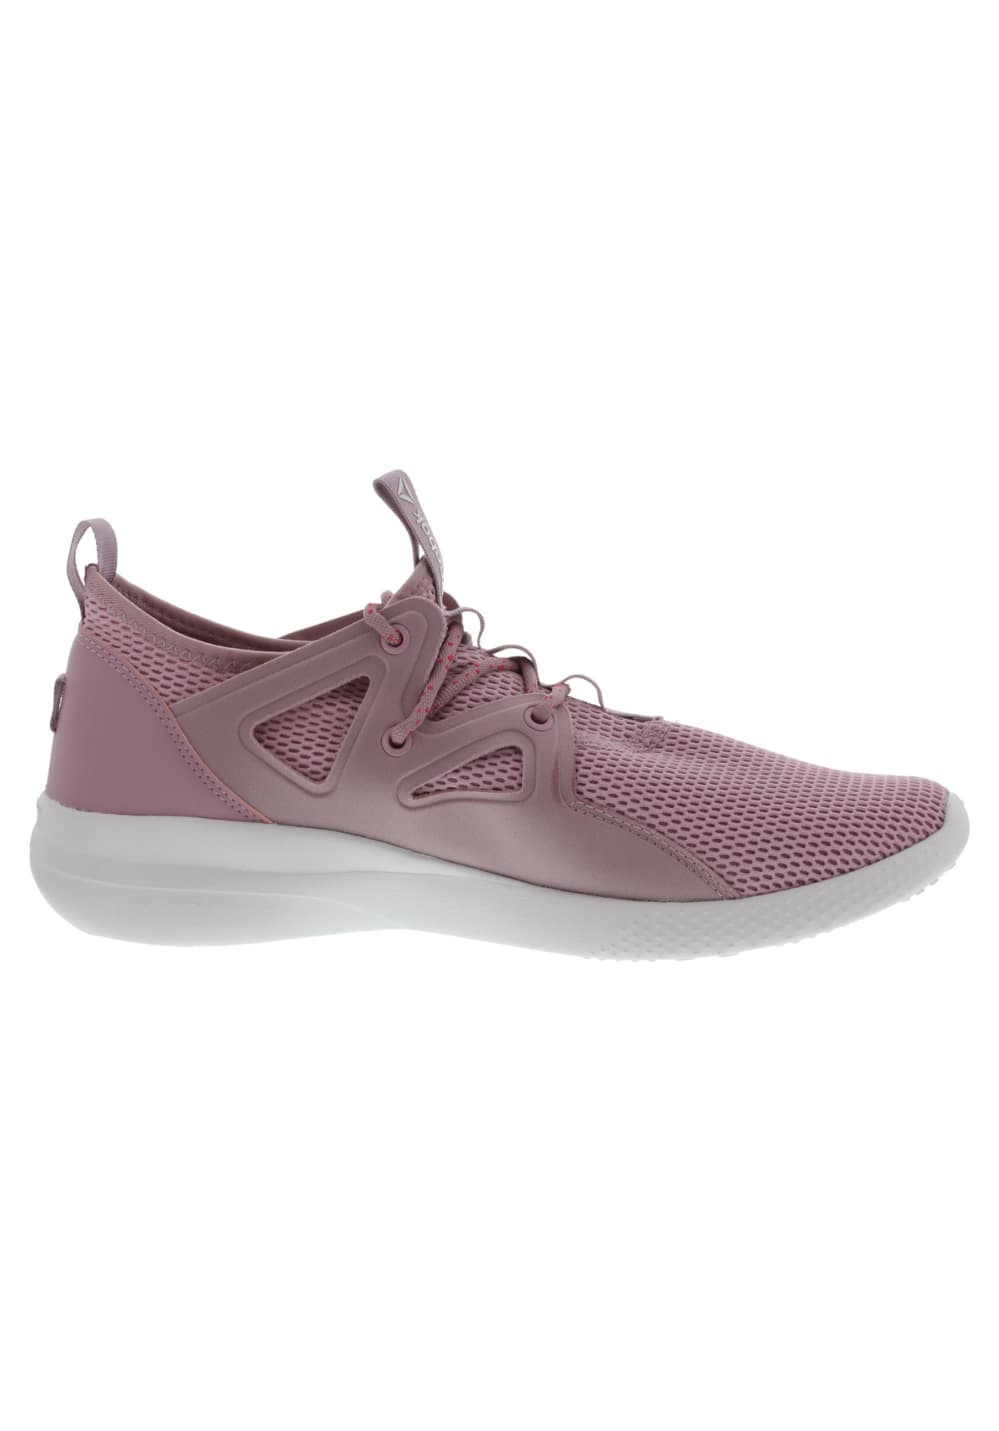 9eebd4790 Previous. Next. -60%. Reebok. Reebok Cardio Motion - Fitness shoes for Women